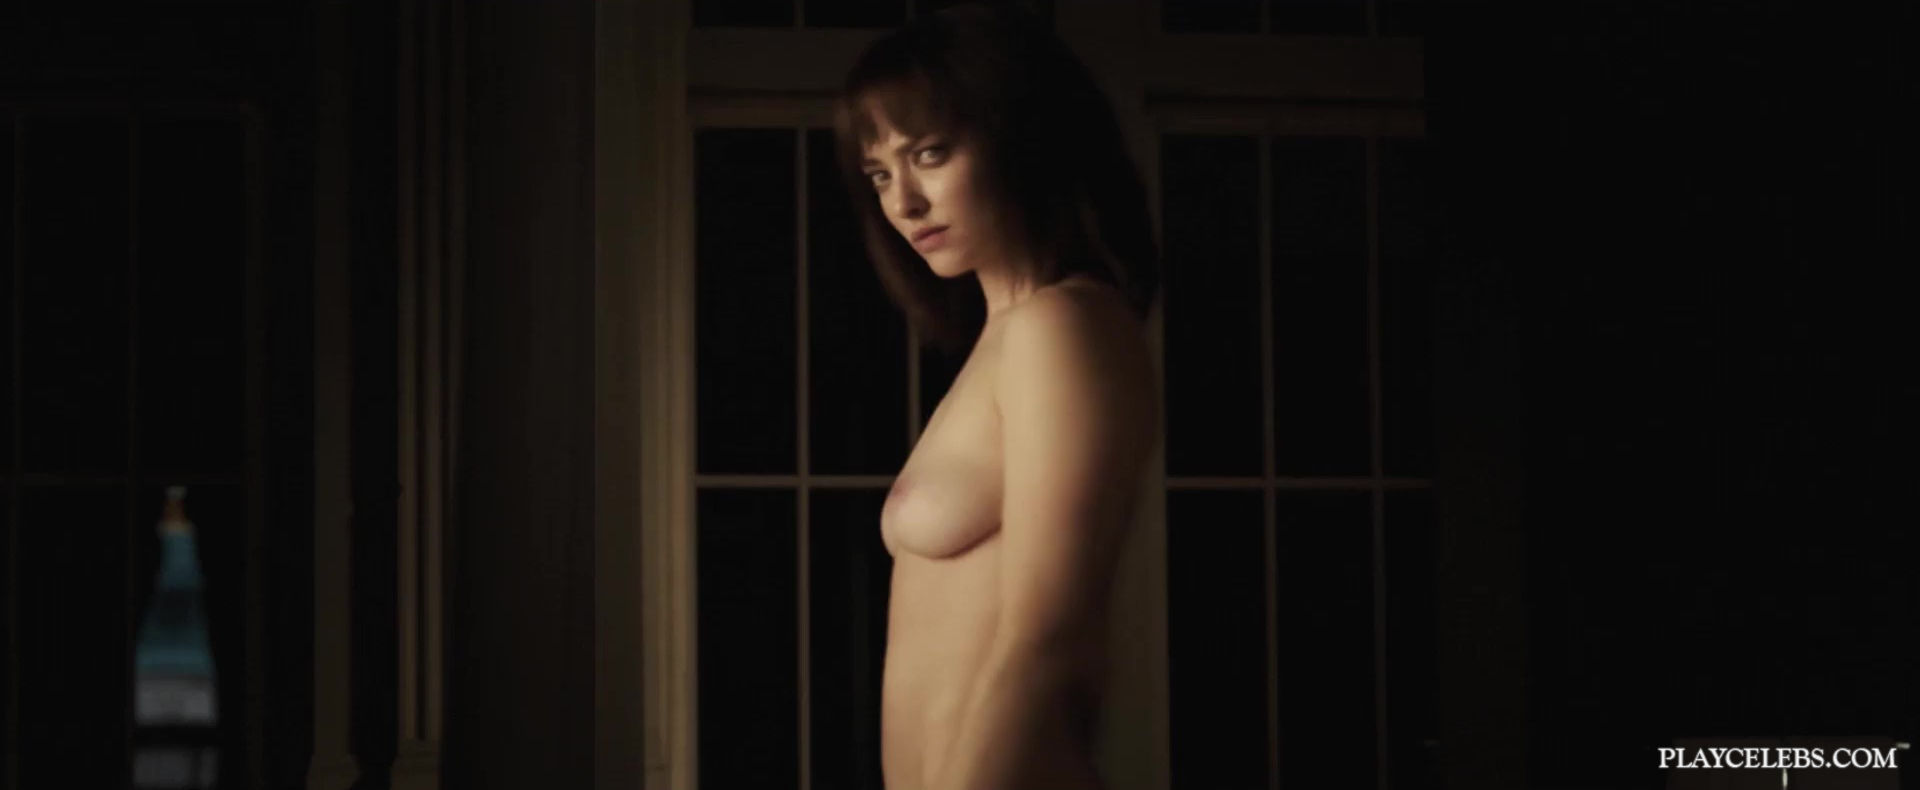 Amanda Seyfried Nude And Hot Sex Scenes In Anon (2018)